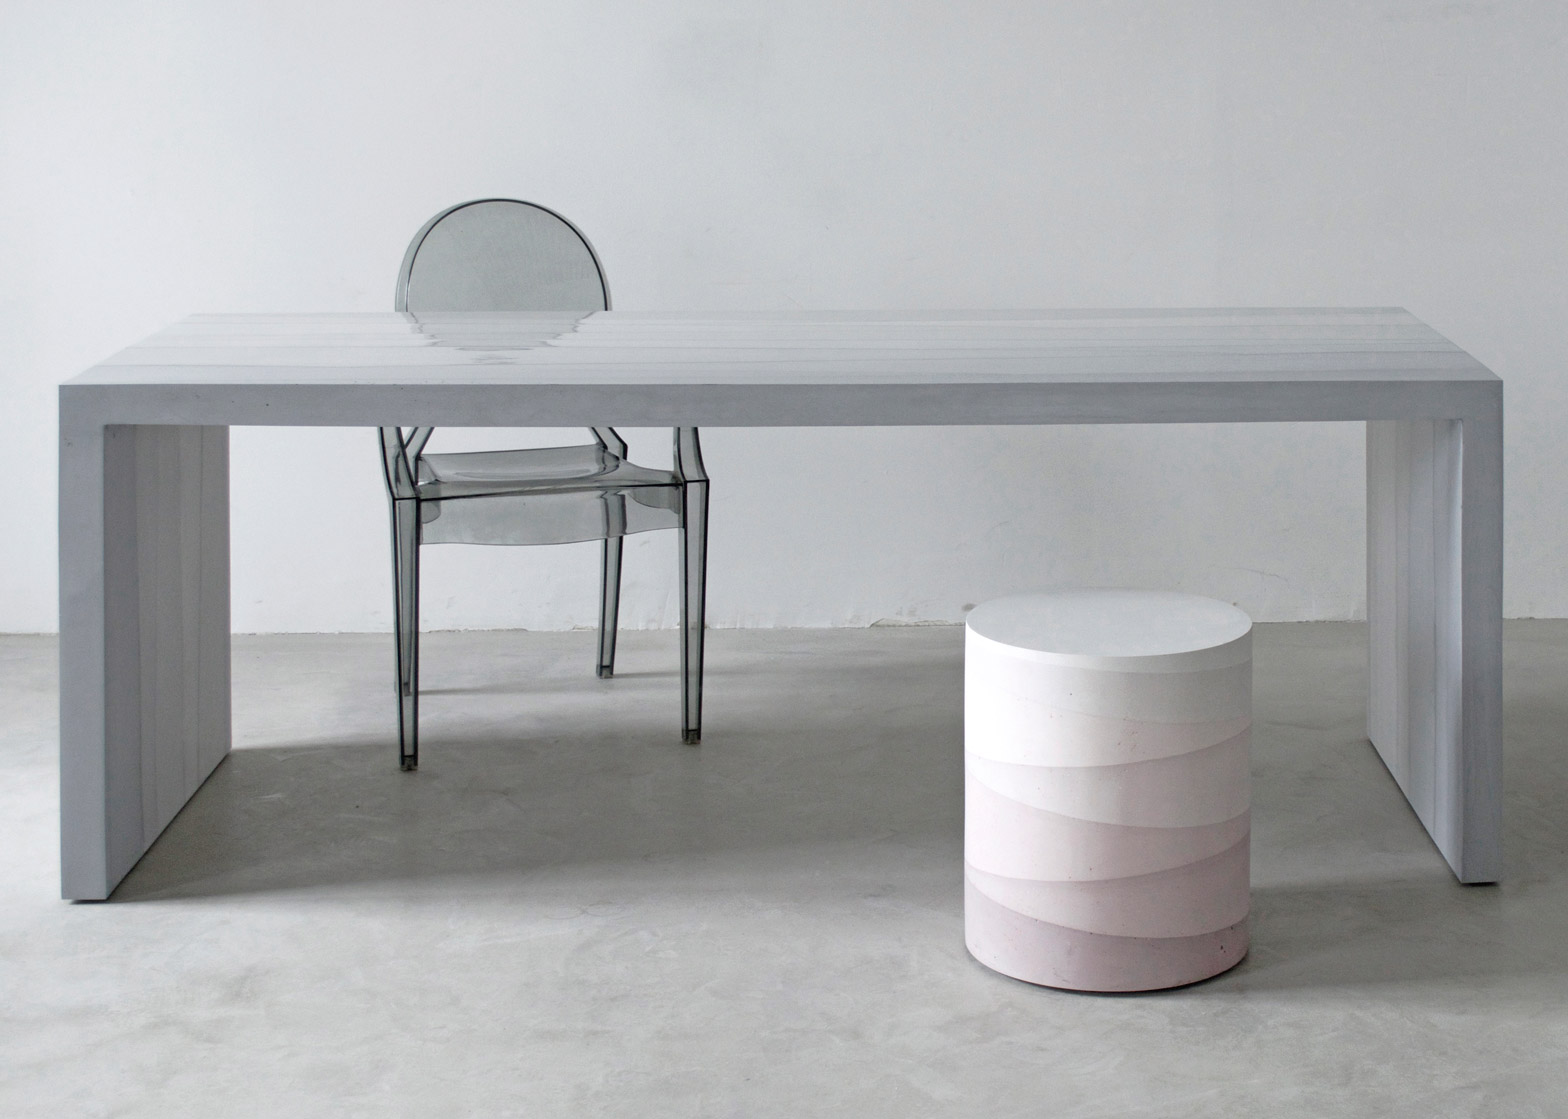 New Design Furniture Fernando Mastrangelo Casts Fade Furniture From Dyed Cement